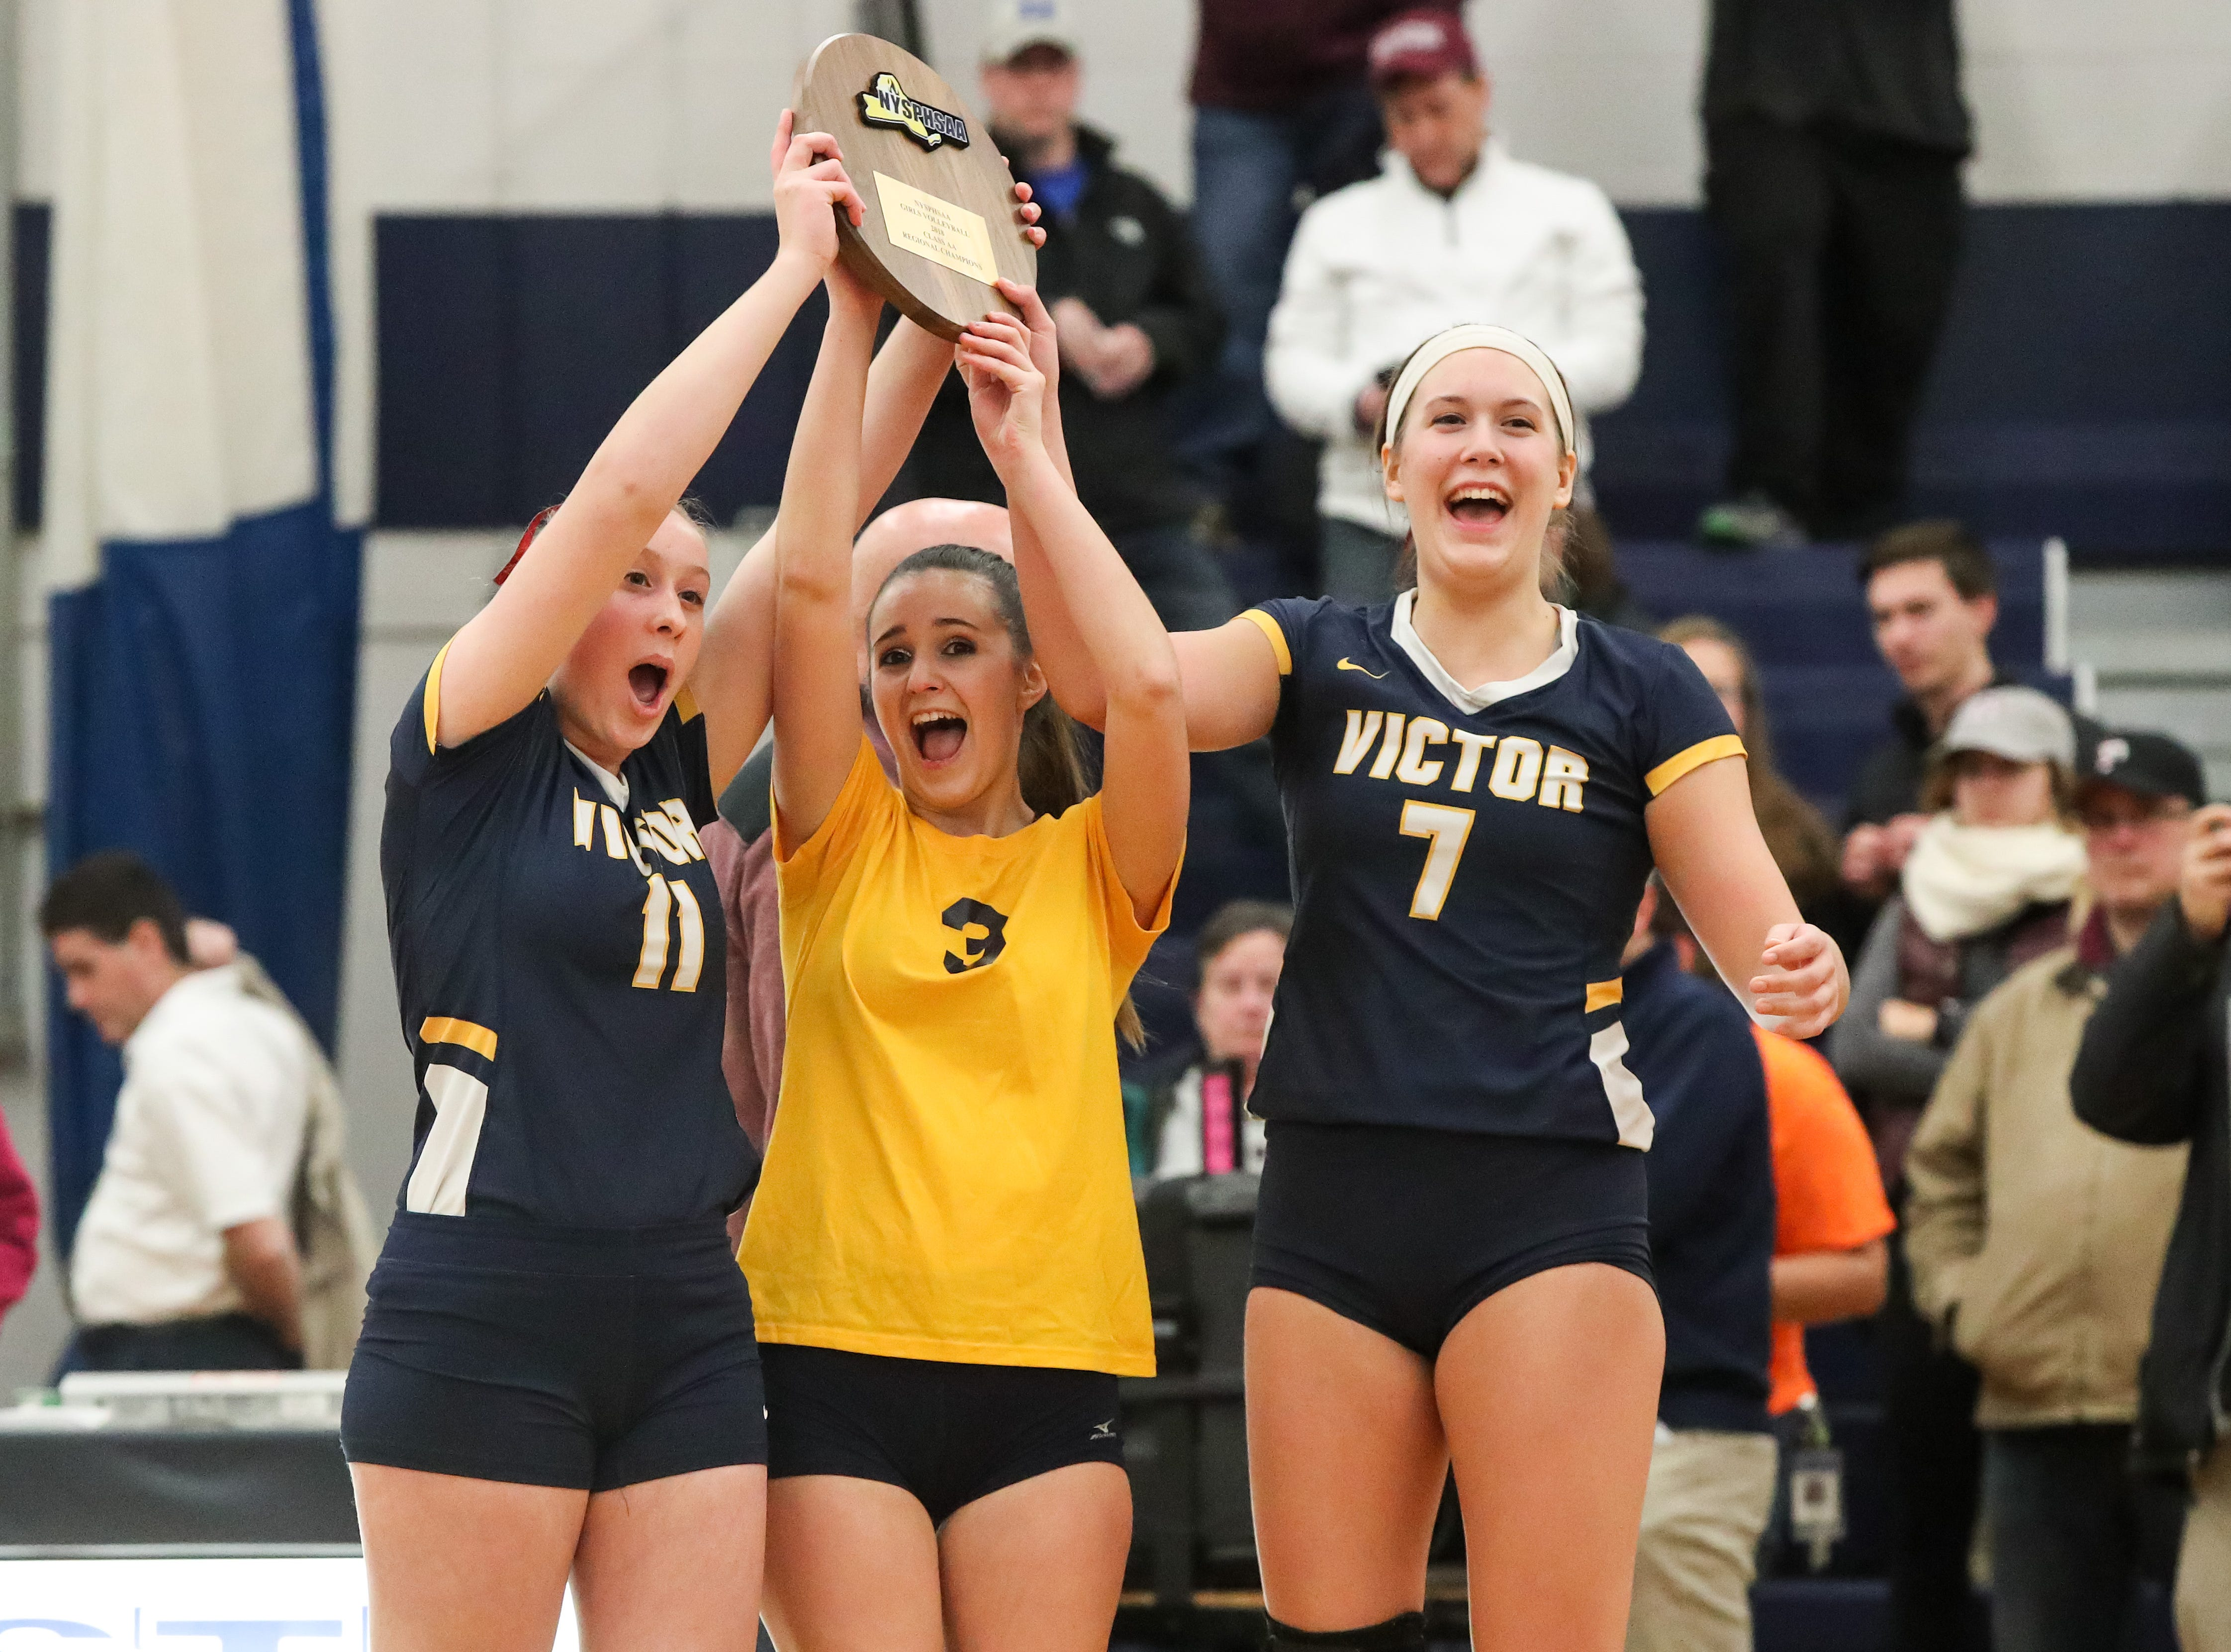 Victor captains Kate Simplicio (11), Ally McFadden (3), and Makenzie Bills (7) hold up their trophy after defeating Orchard Park in the Class AA West Regional high school girls volleyball match at Webster Thomas on Nov. 9, 2018.